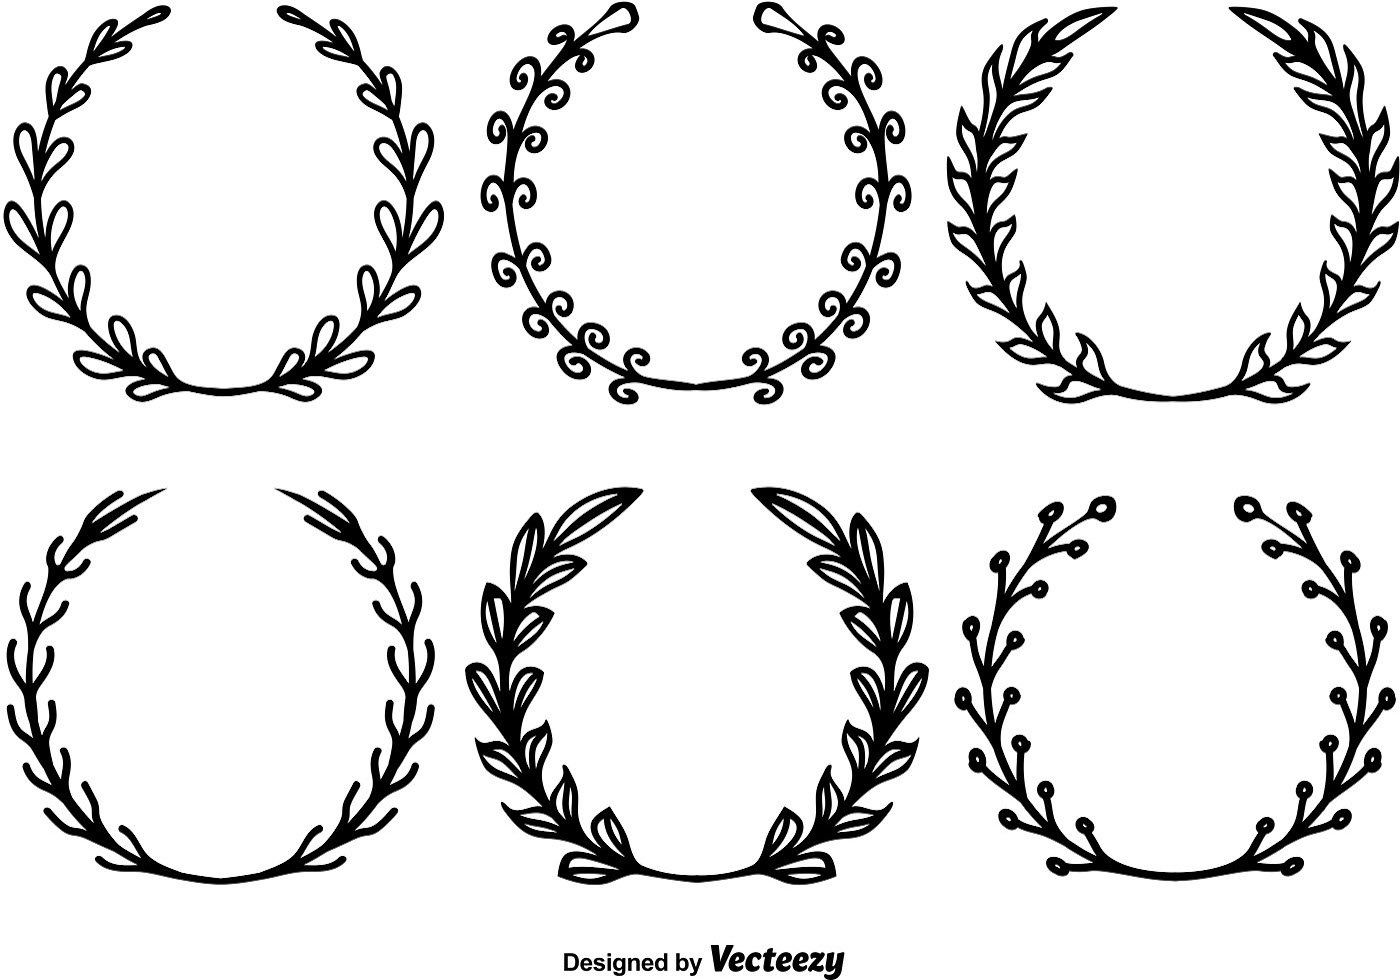 Hand Drawn Wreath Vectors Wreath drawing, How to draw